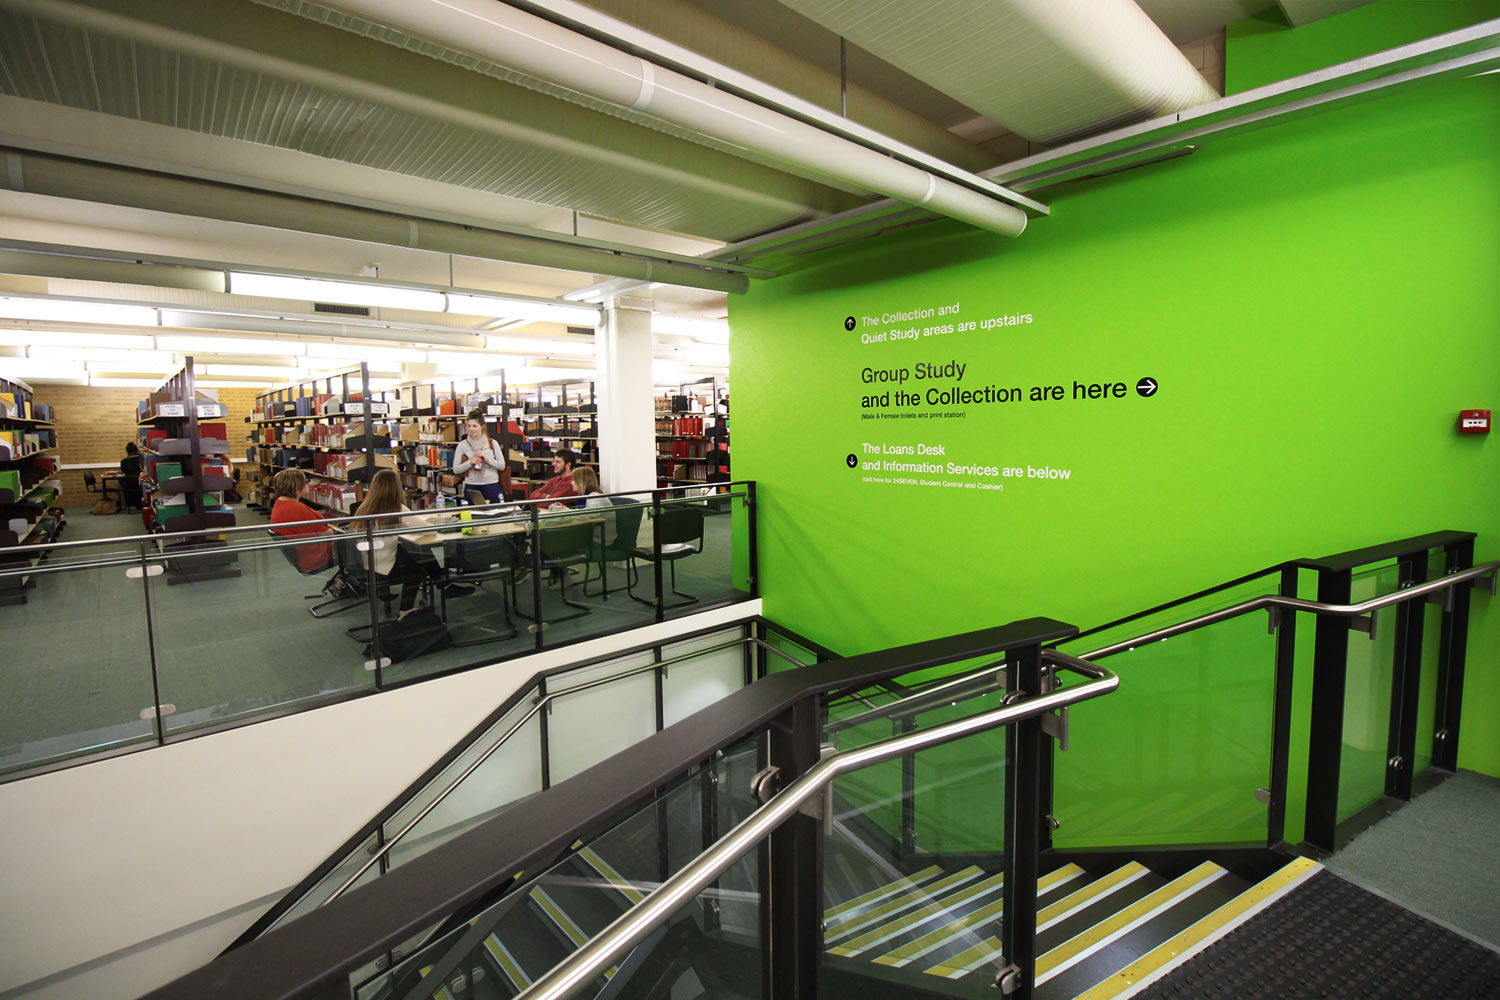 CSU, Wagga: Cost effective directional signage - we painted the main staircase wall to add some colour to the oder part of the library and applied large directional vinyl signage